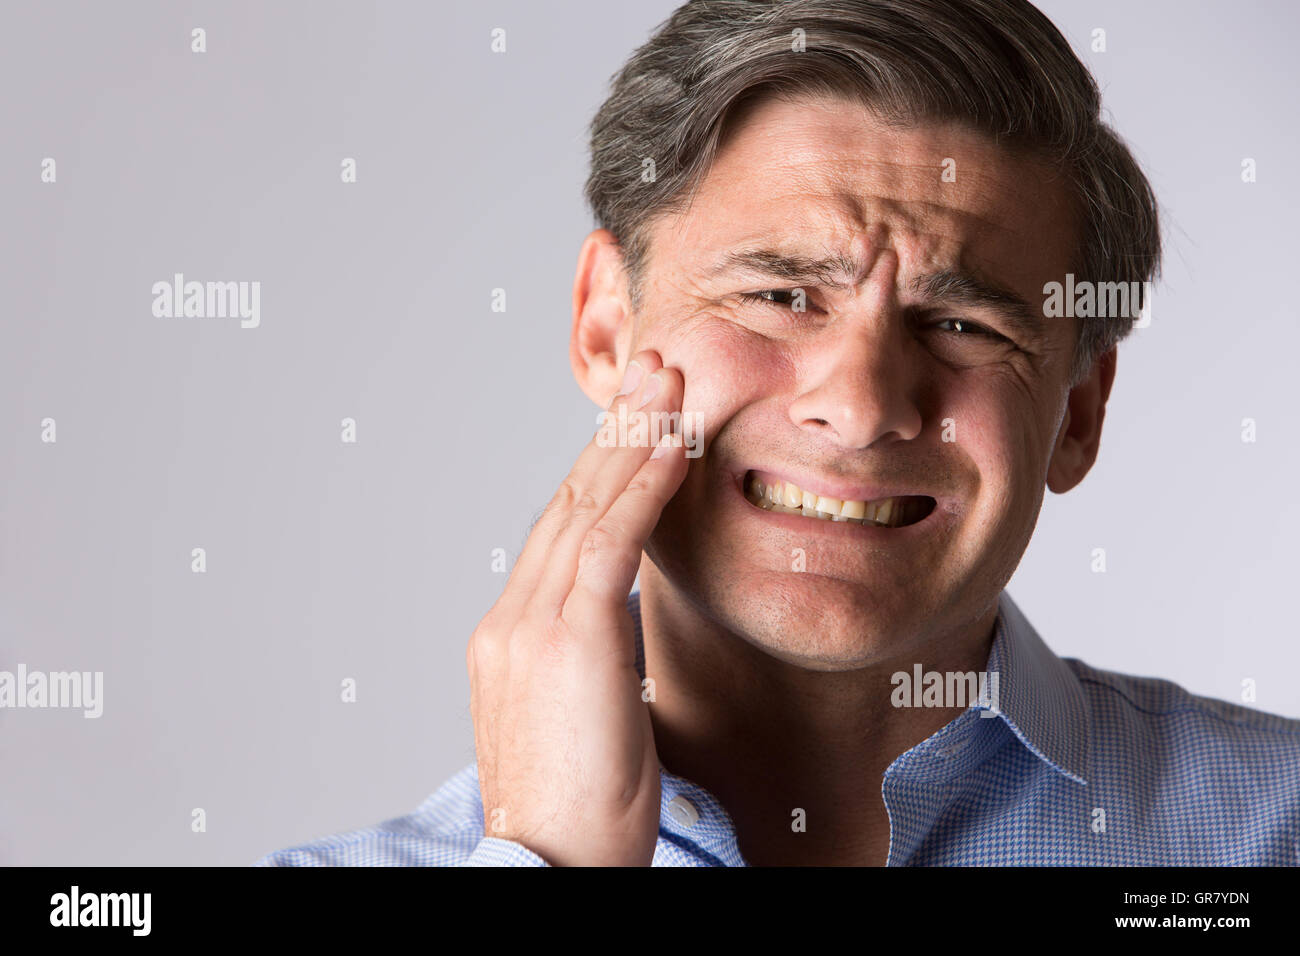 Studio Portrait Of Man Suffering With Toothache - Stock Image